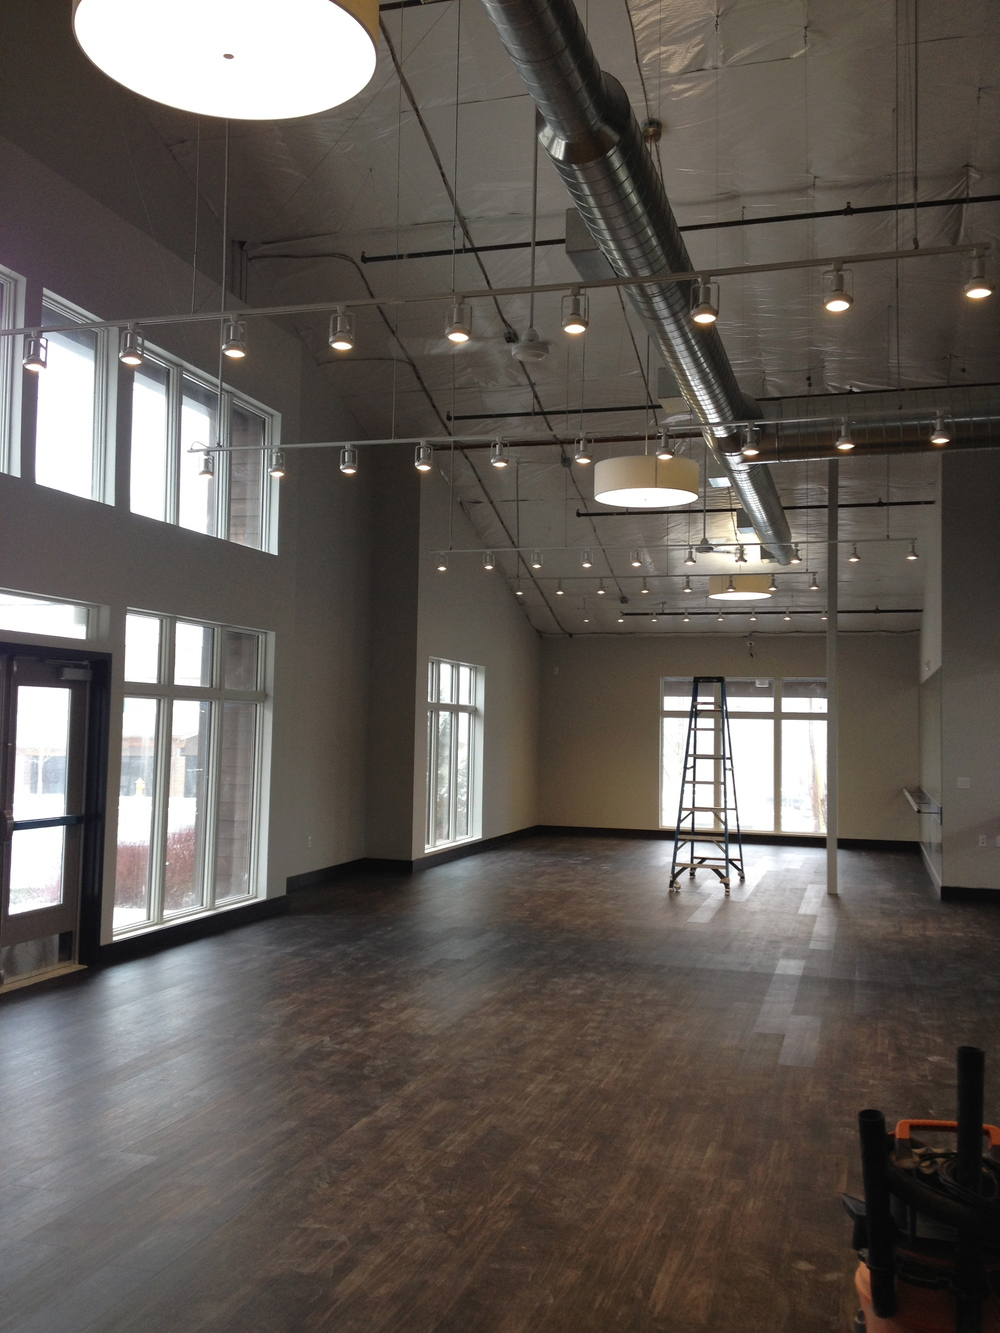 Aspire Total Fitness main studio while still under construction.